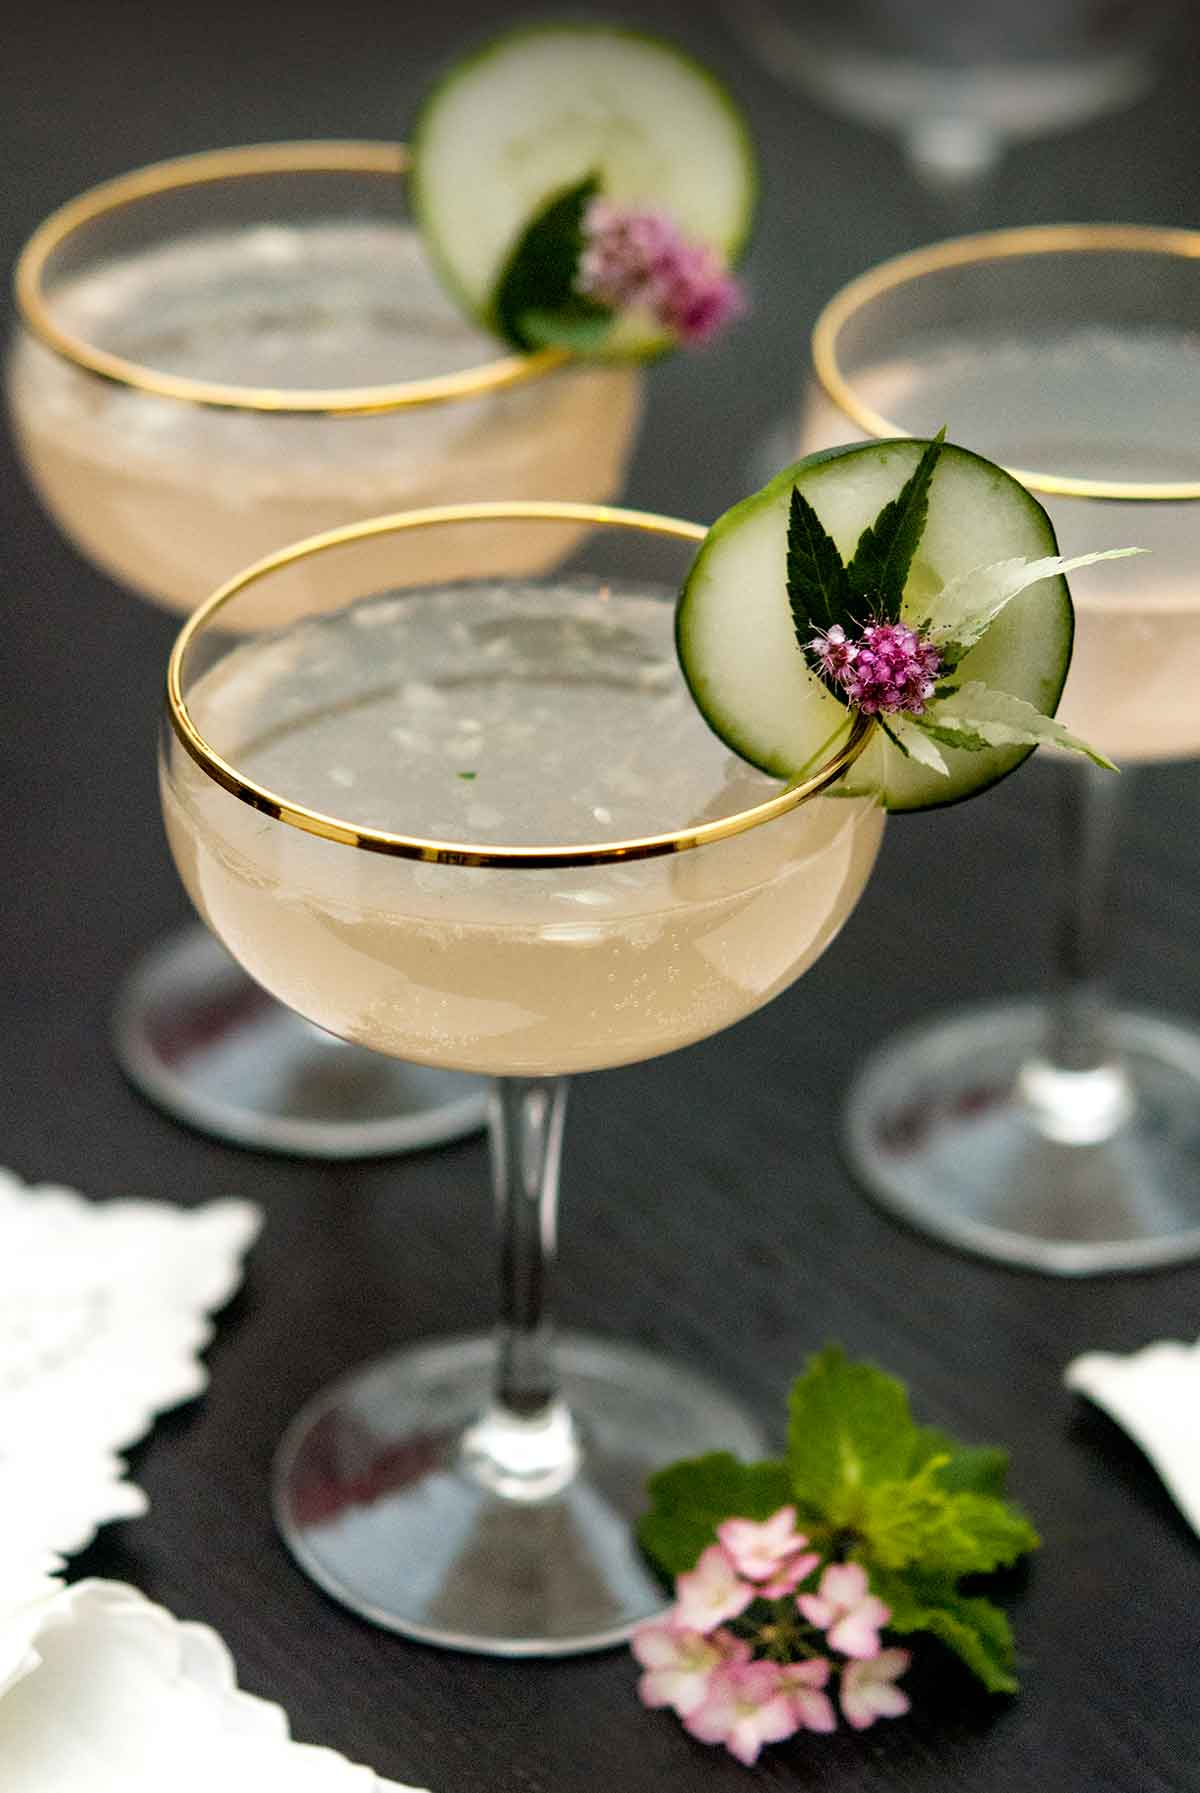 3 cocktails, garnished with a cucumber, leaf and small flowers with flowers at its base, as well as napkins.